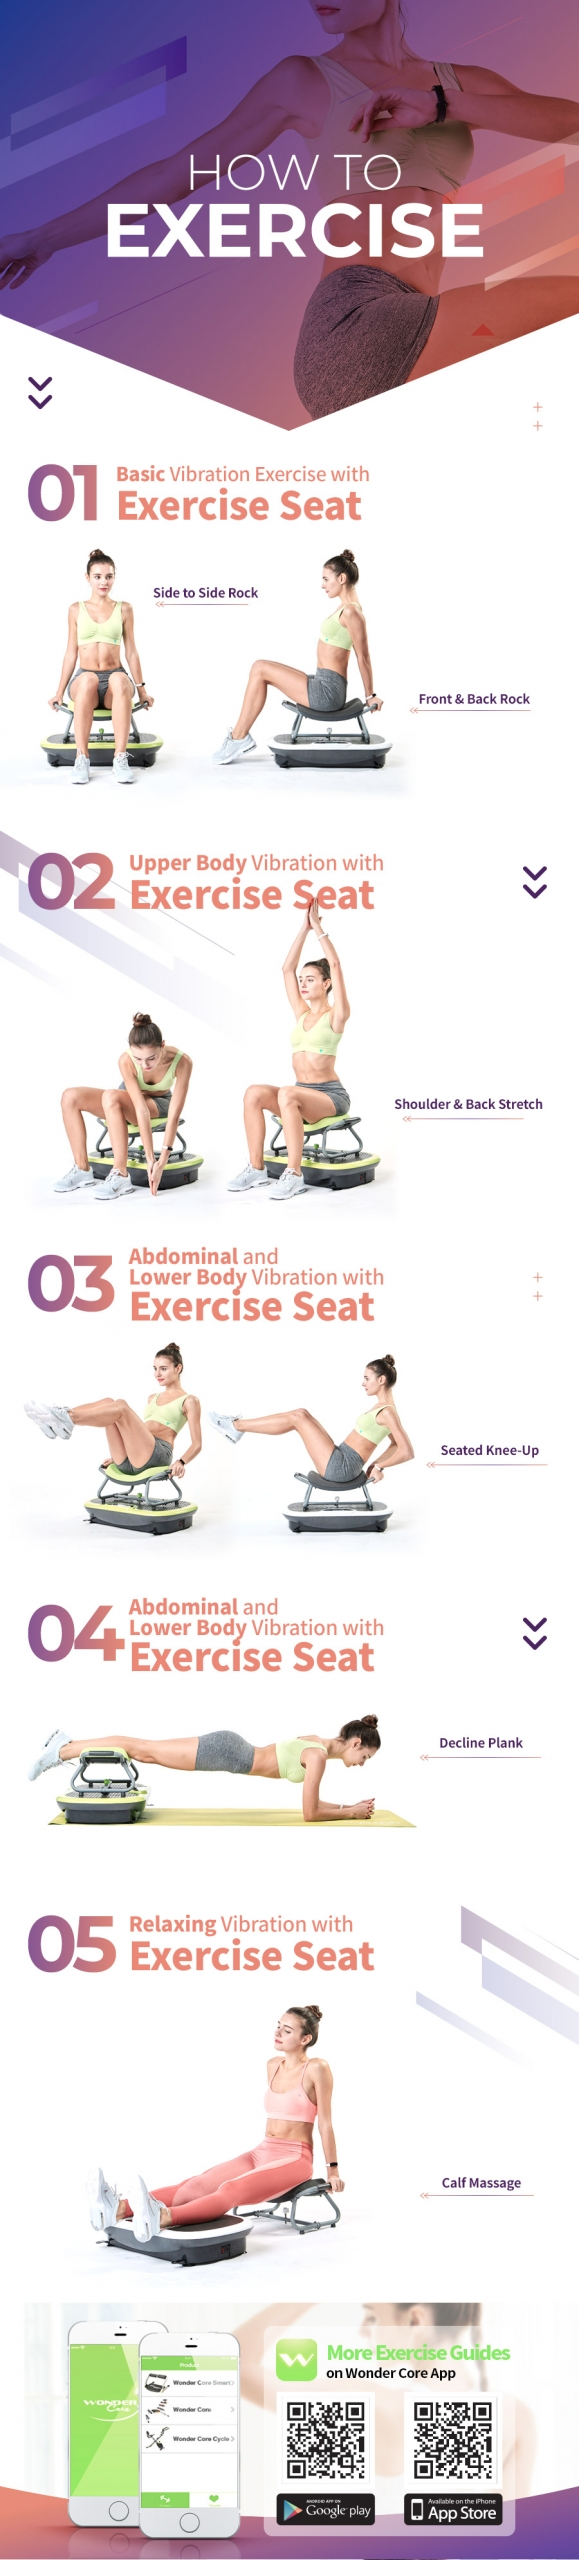 rock n fit exercices